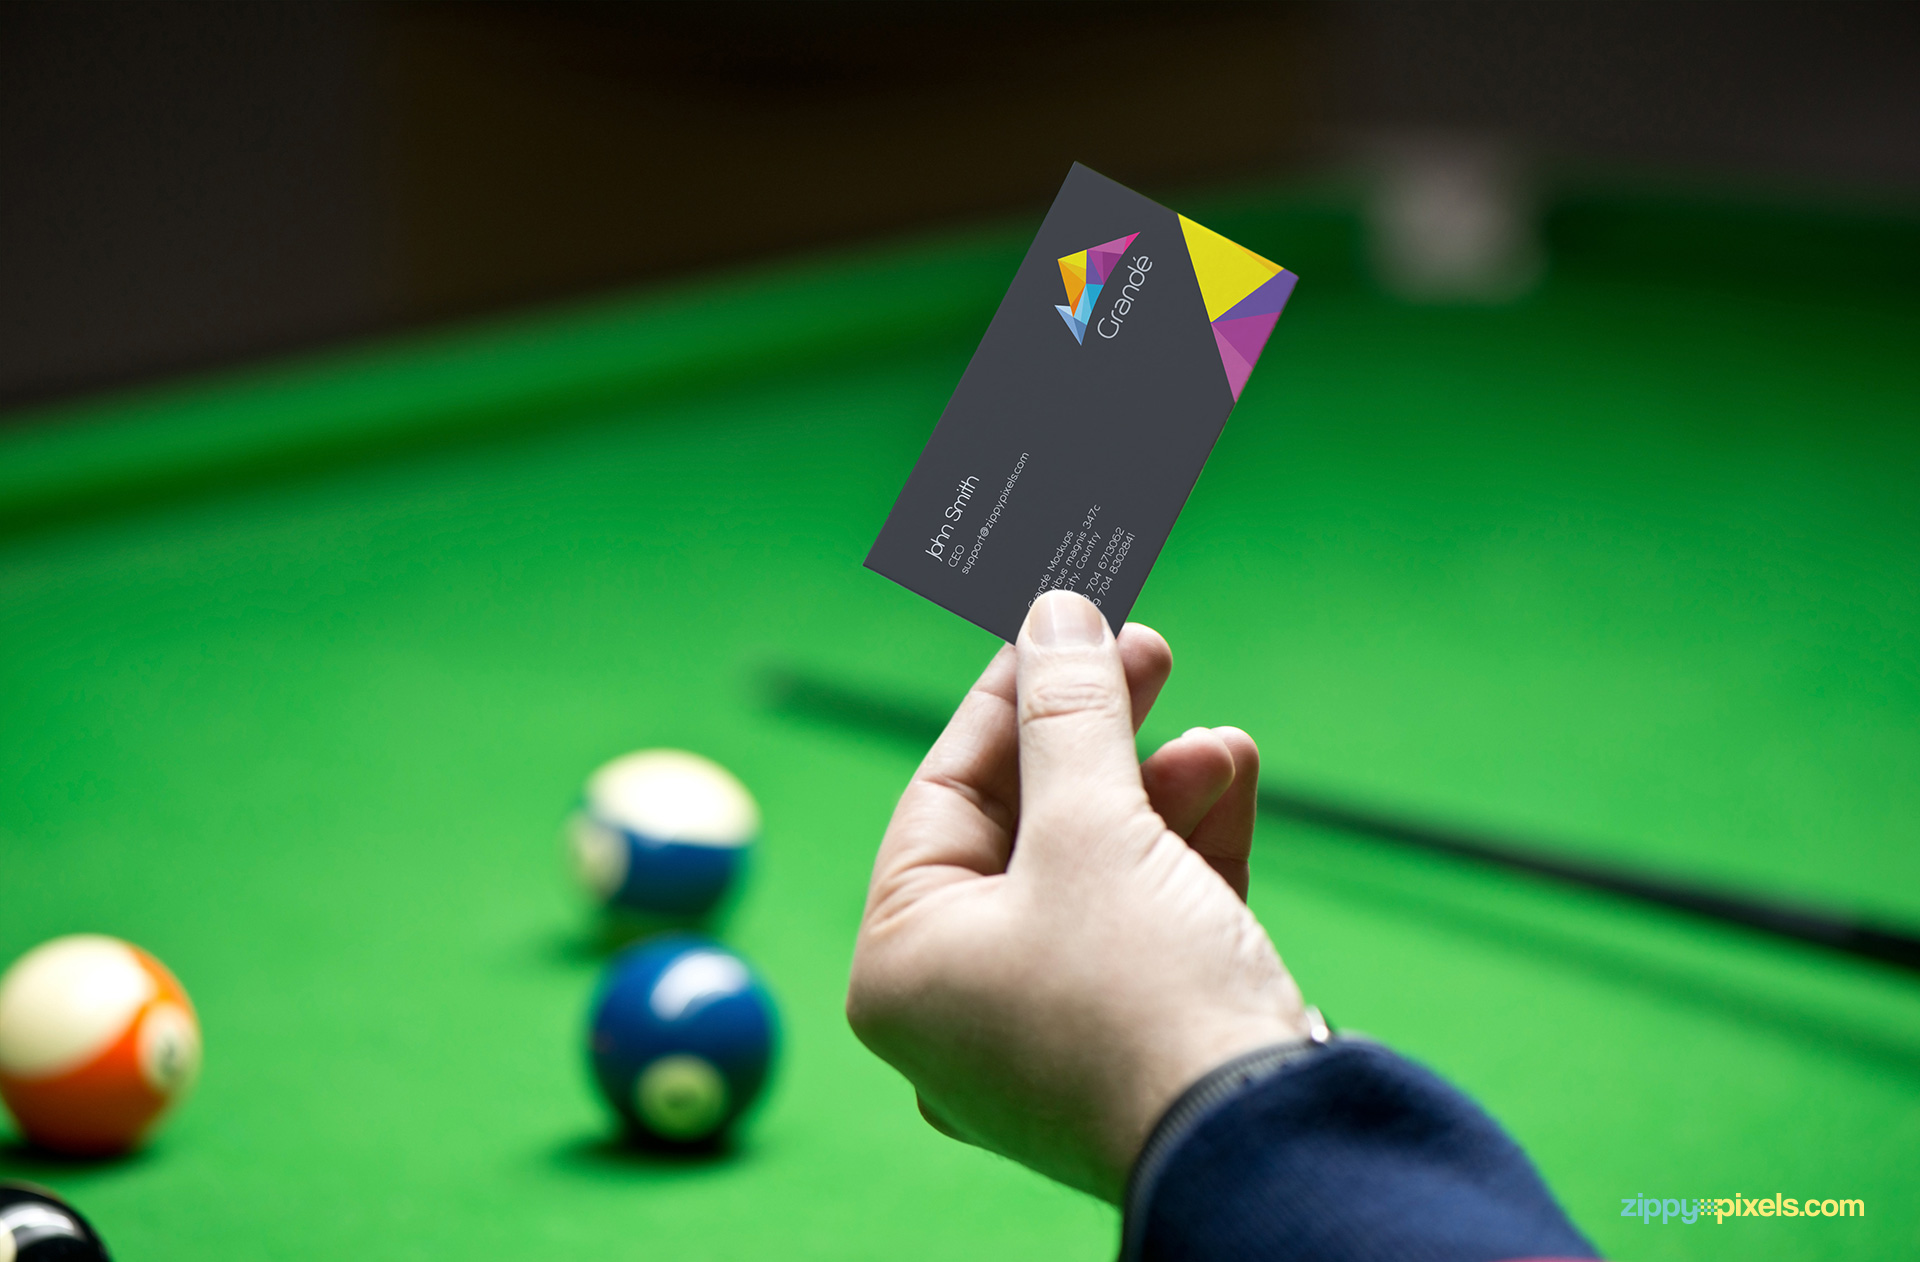 Free and easy to use realistic business card mockup with a pool table background.